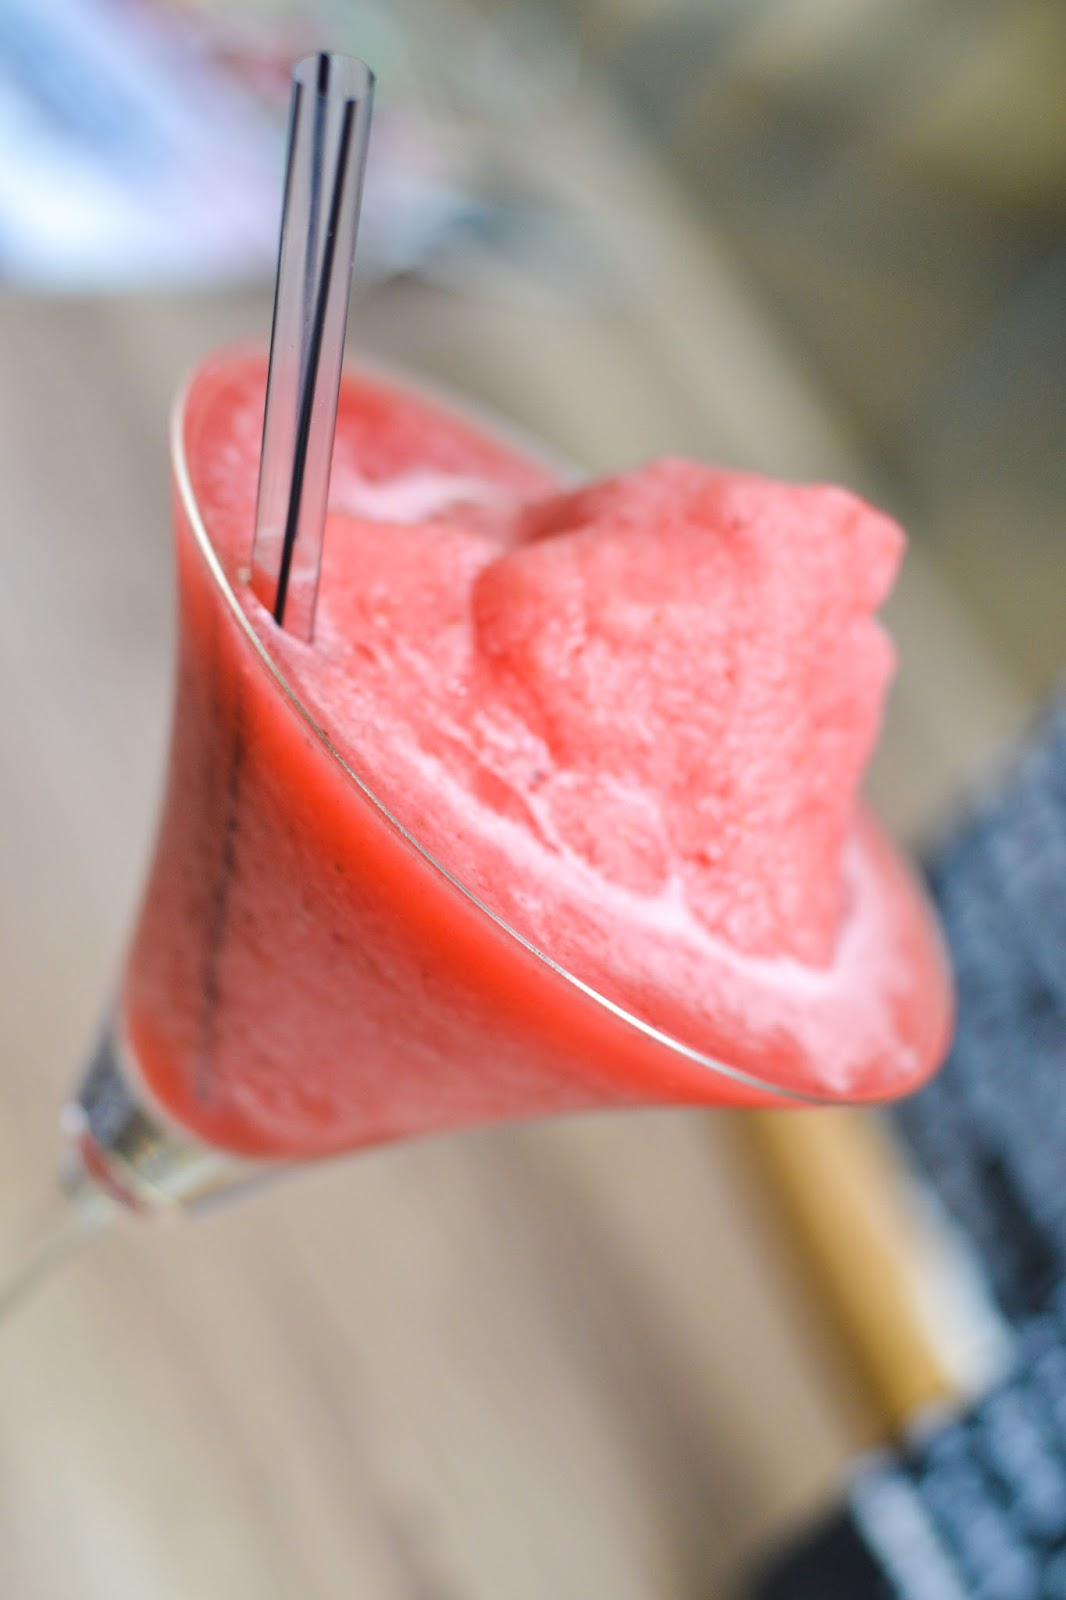 Strawberry Daiquiri in Nigeria